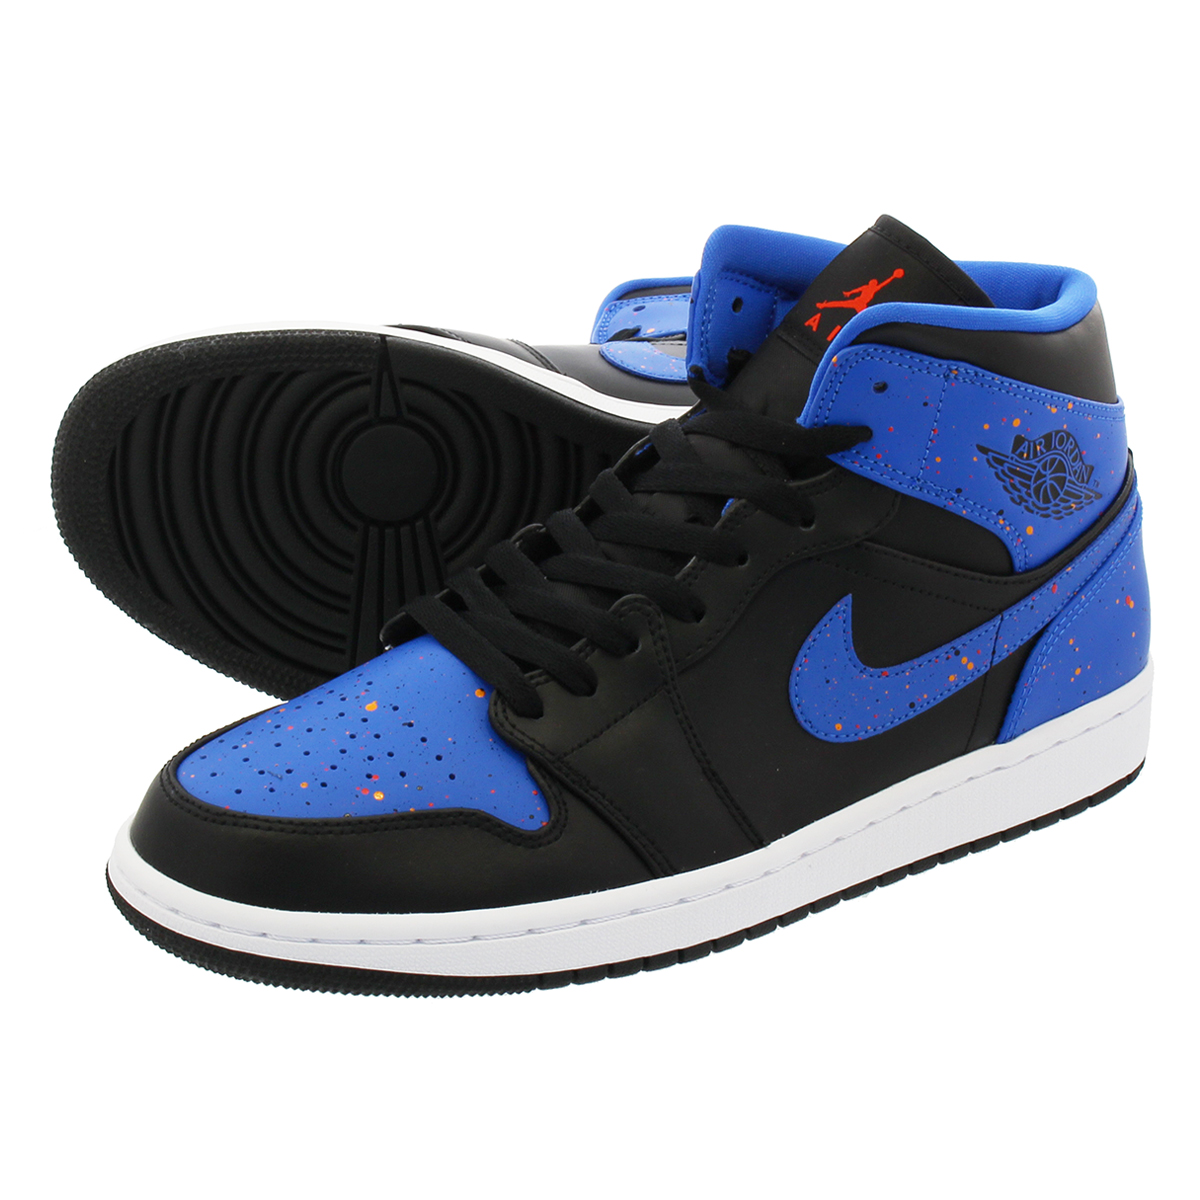 new styles 194c1 64a1f NIKE AIR JORDAN 1 MID Nike Air Jordan 1 mid BLACK/SIGNAL BLUE/ORANGE